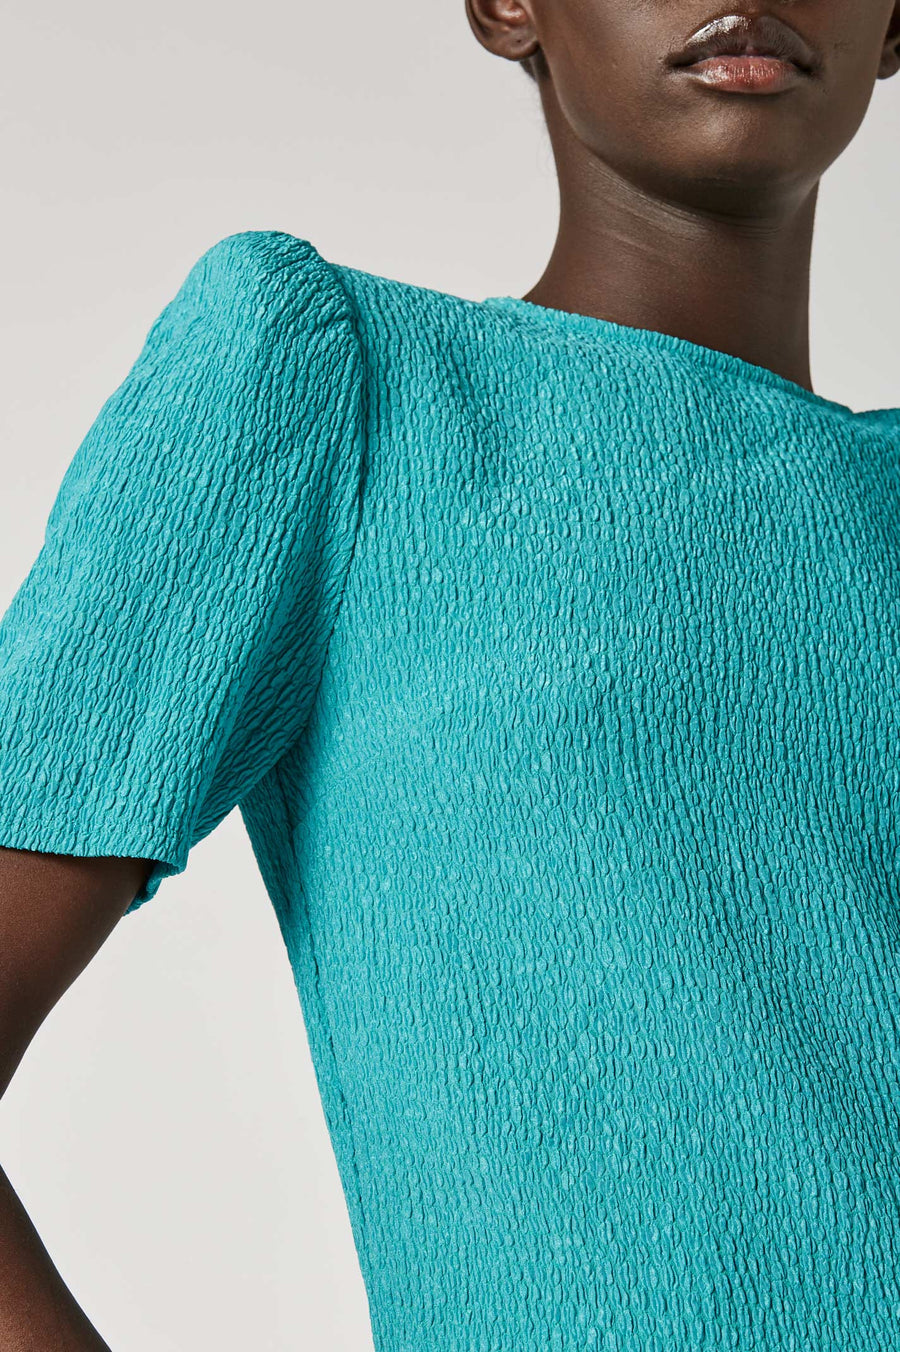 Experiment with textures in our Stretch Reptile Top.